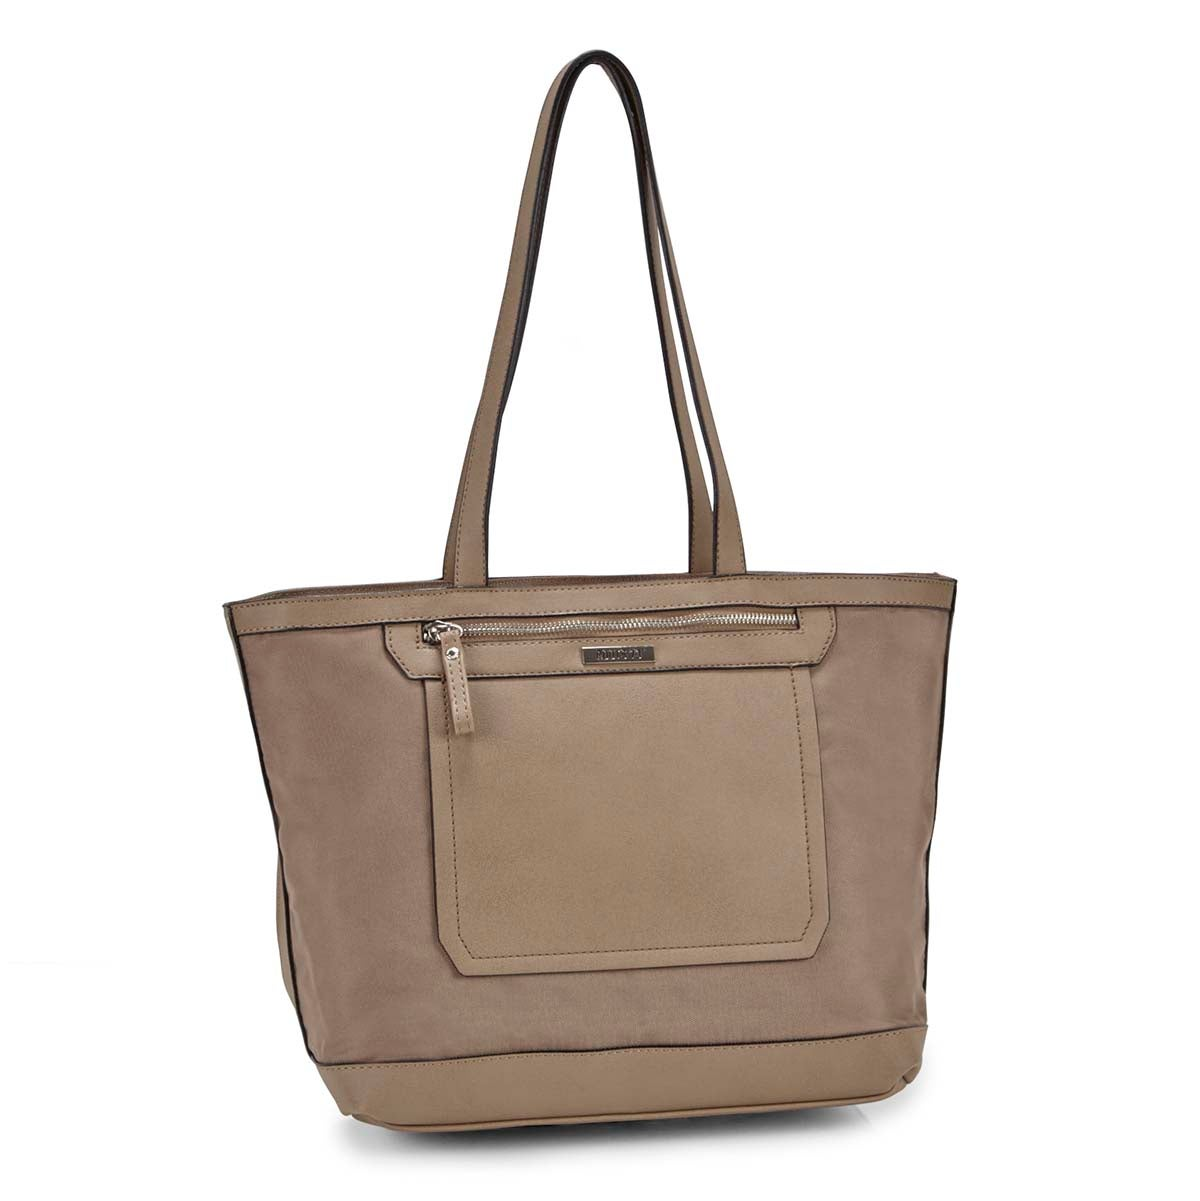 Women's R4869 mocha large tote bag